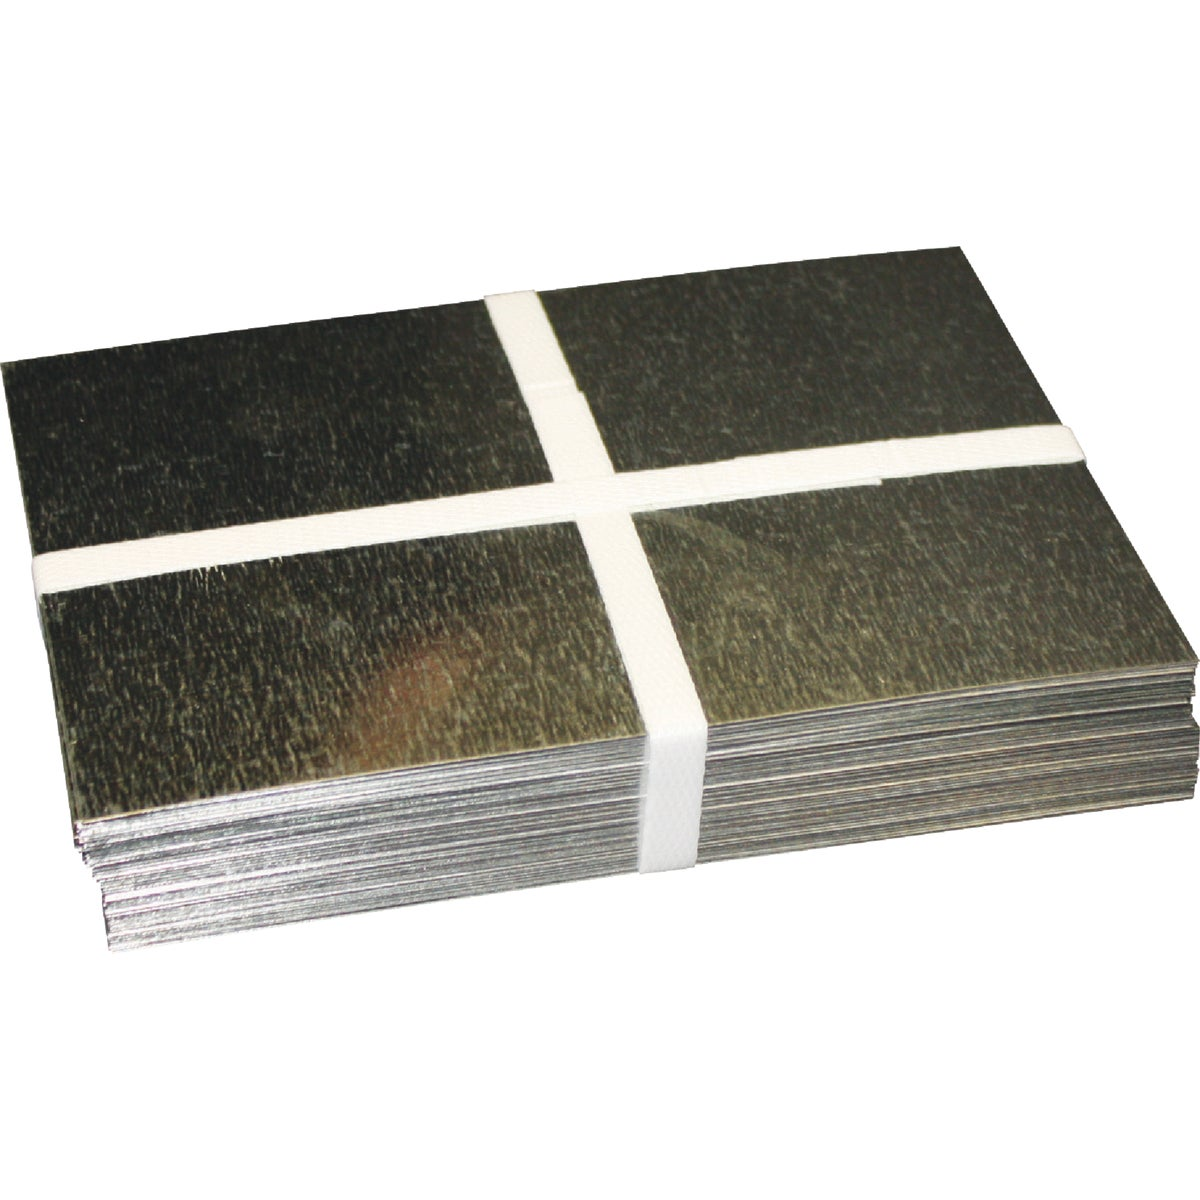 "5""X7"" TT FLSHING SHINGLE"